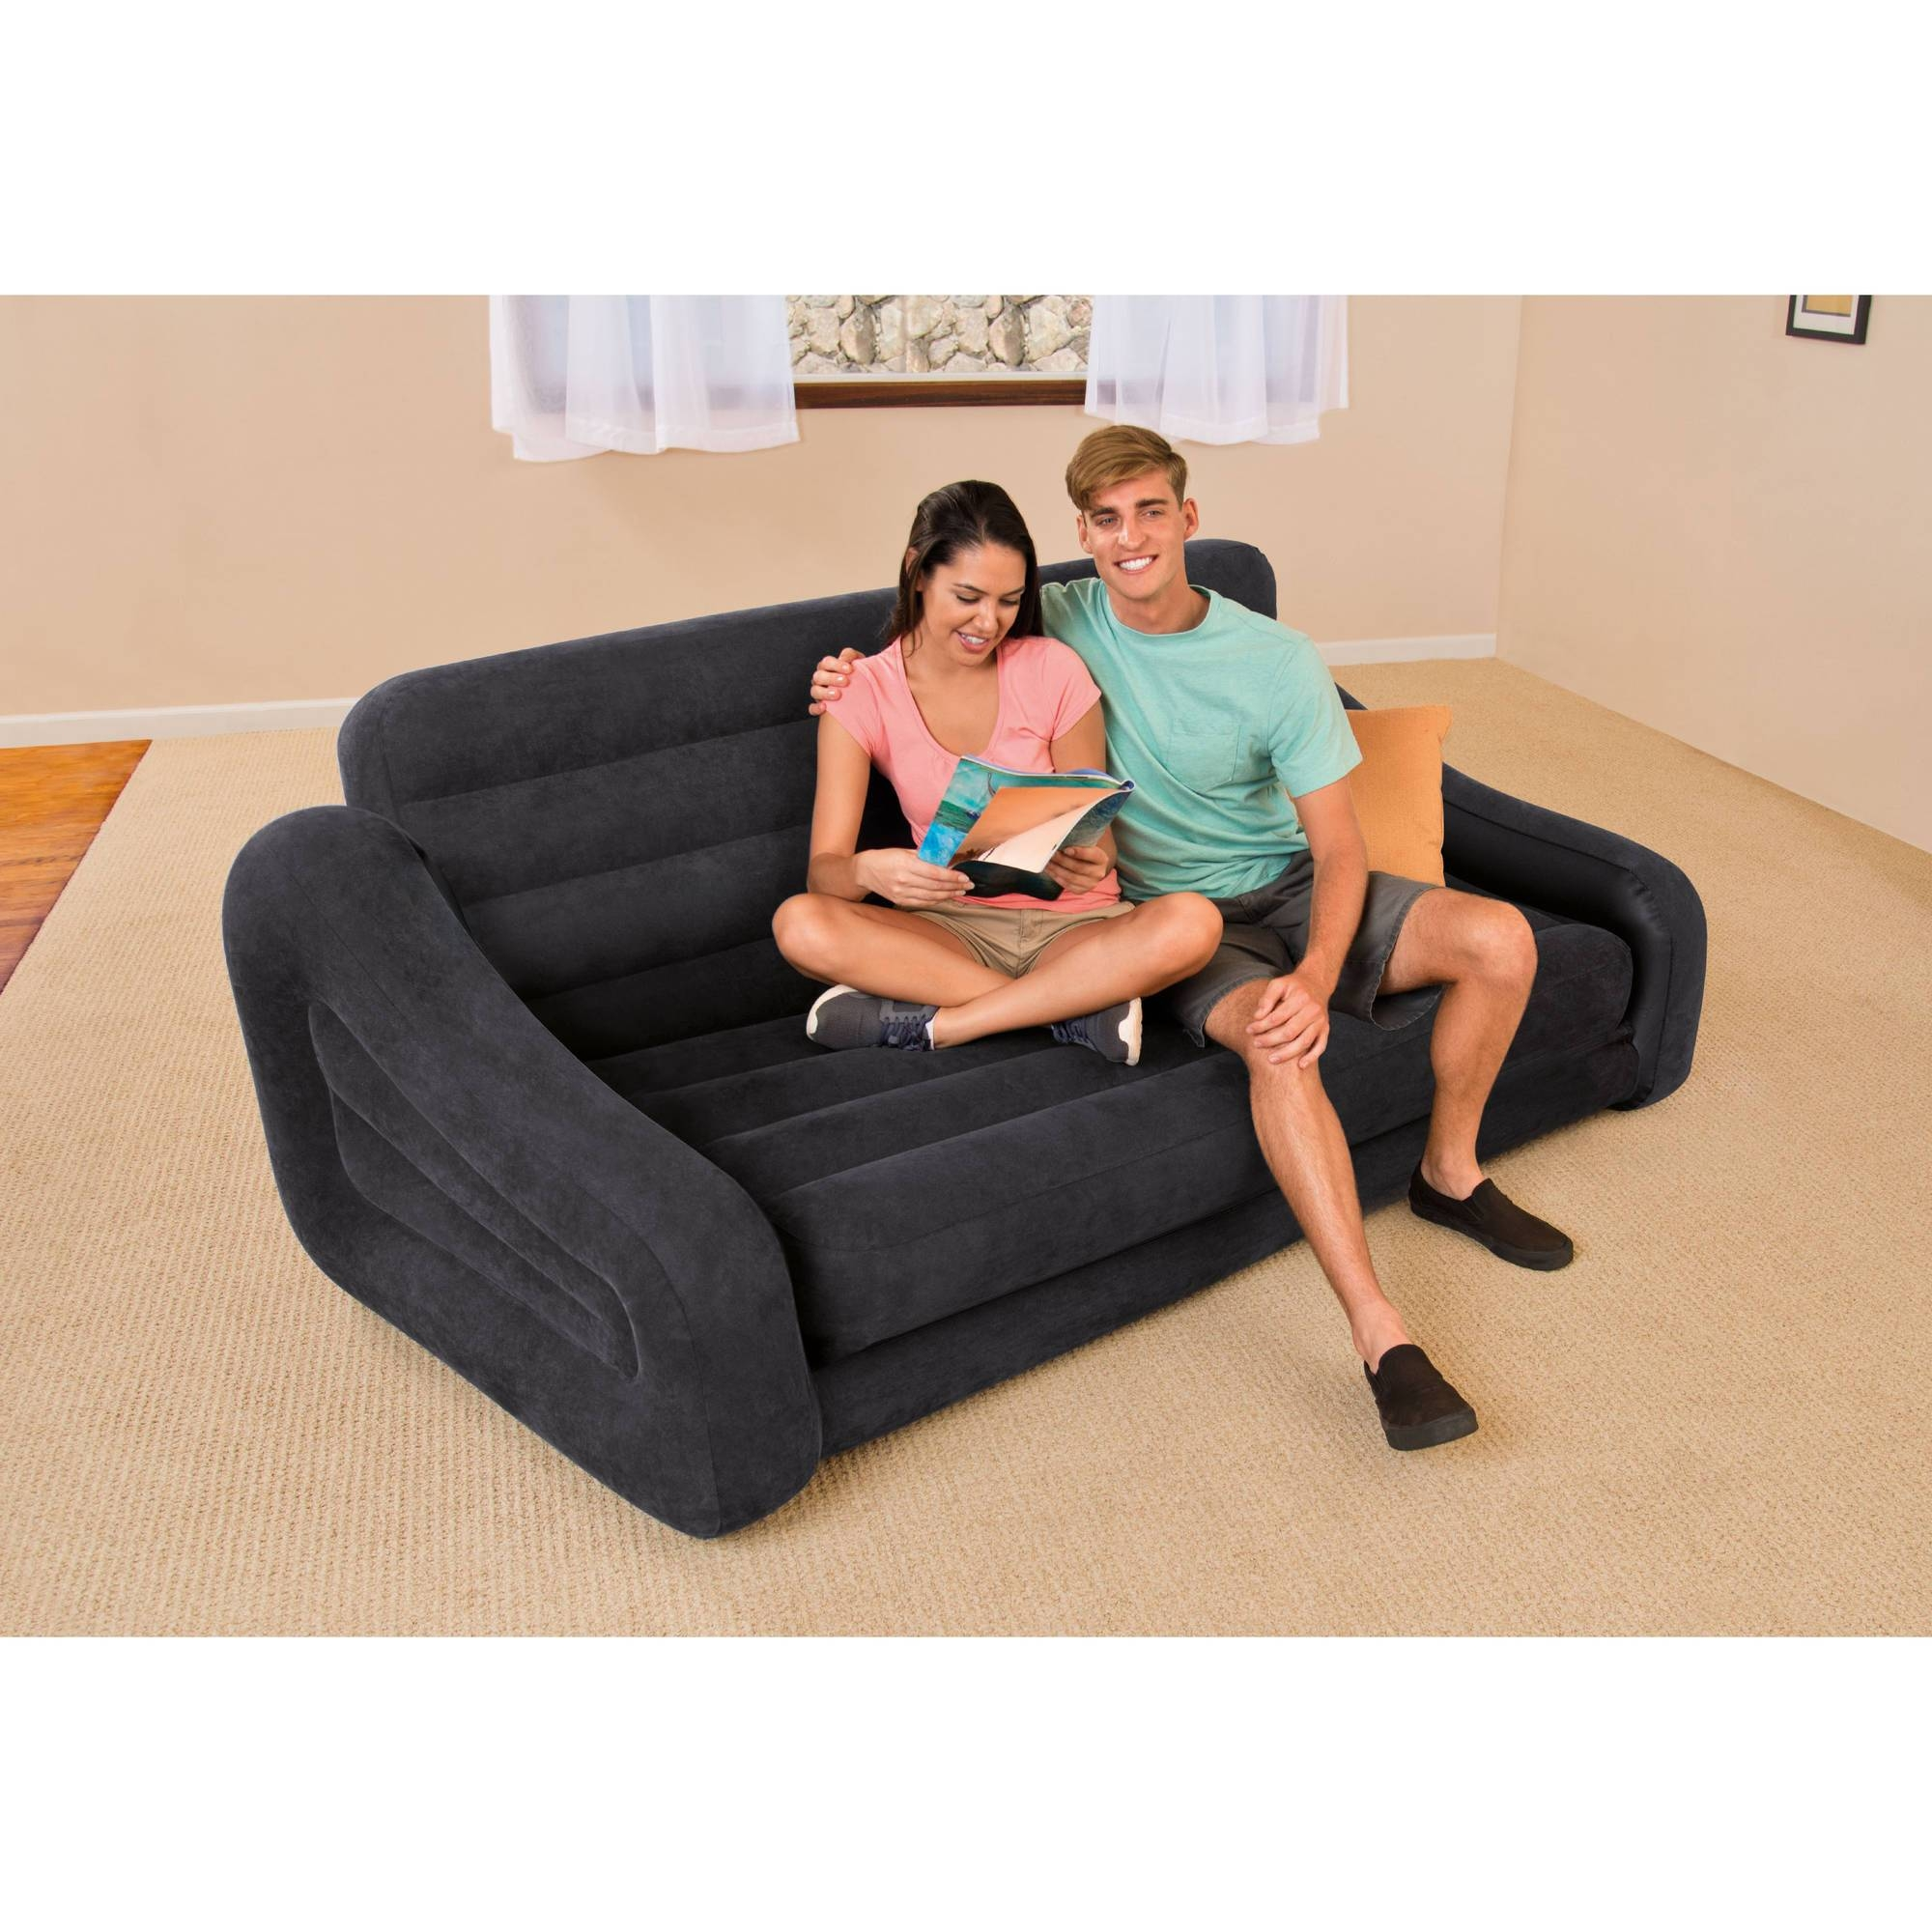 Intex Queen Inflatable Pull-Out Sofa Bed - Walmart within Intex Inflatable Pull Out Sofas (Image 15 of 15)